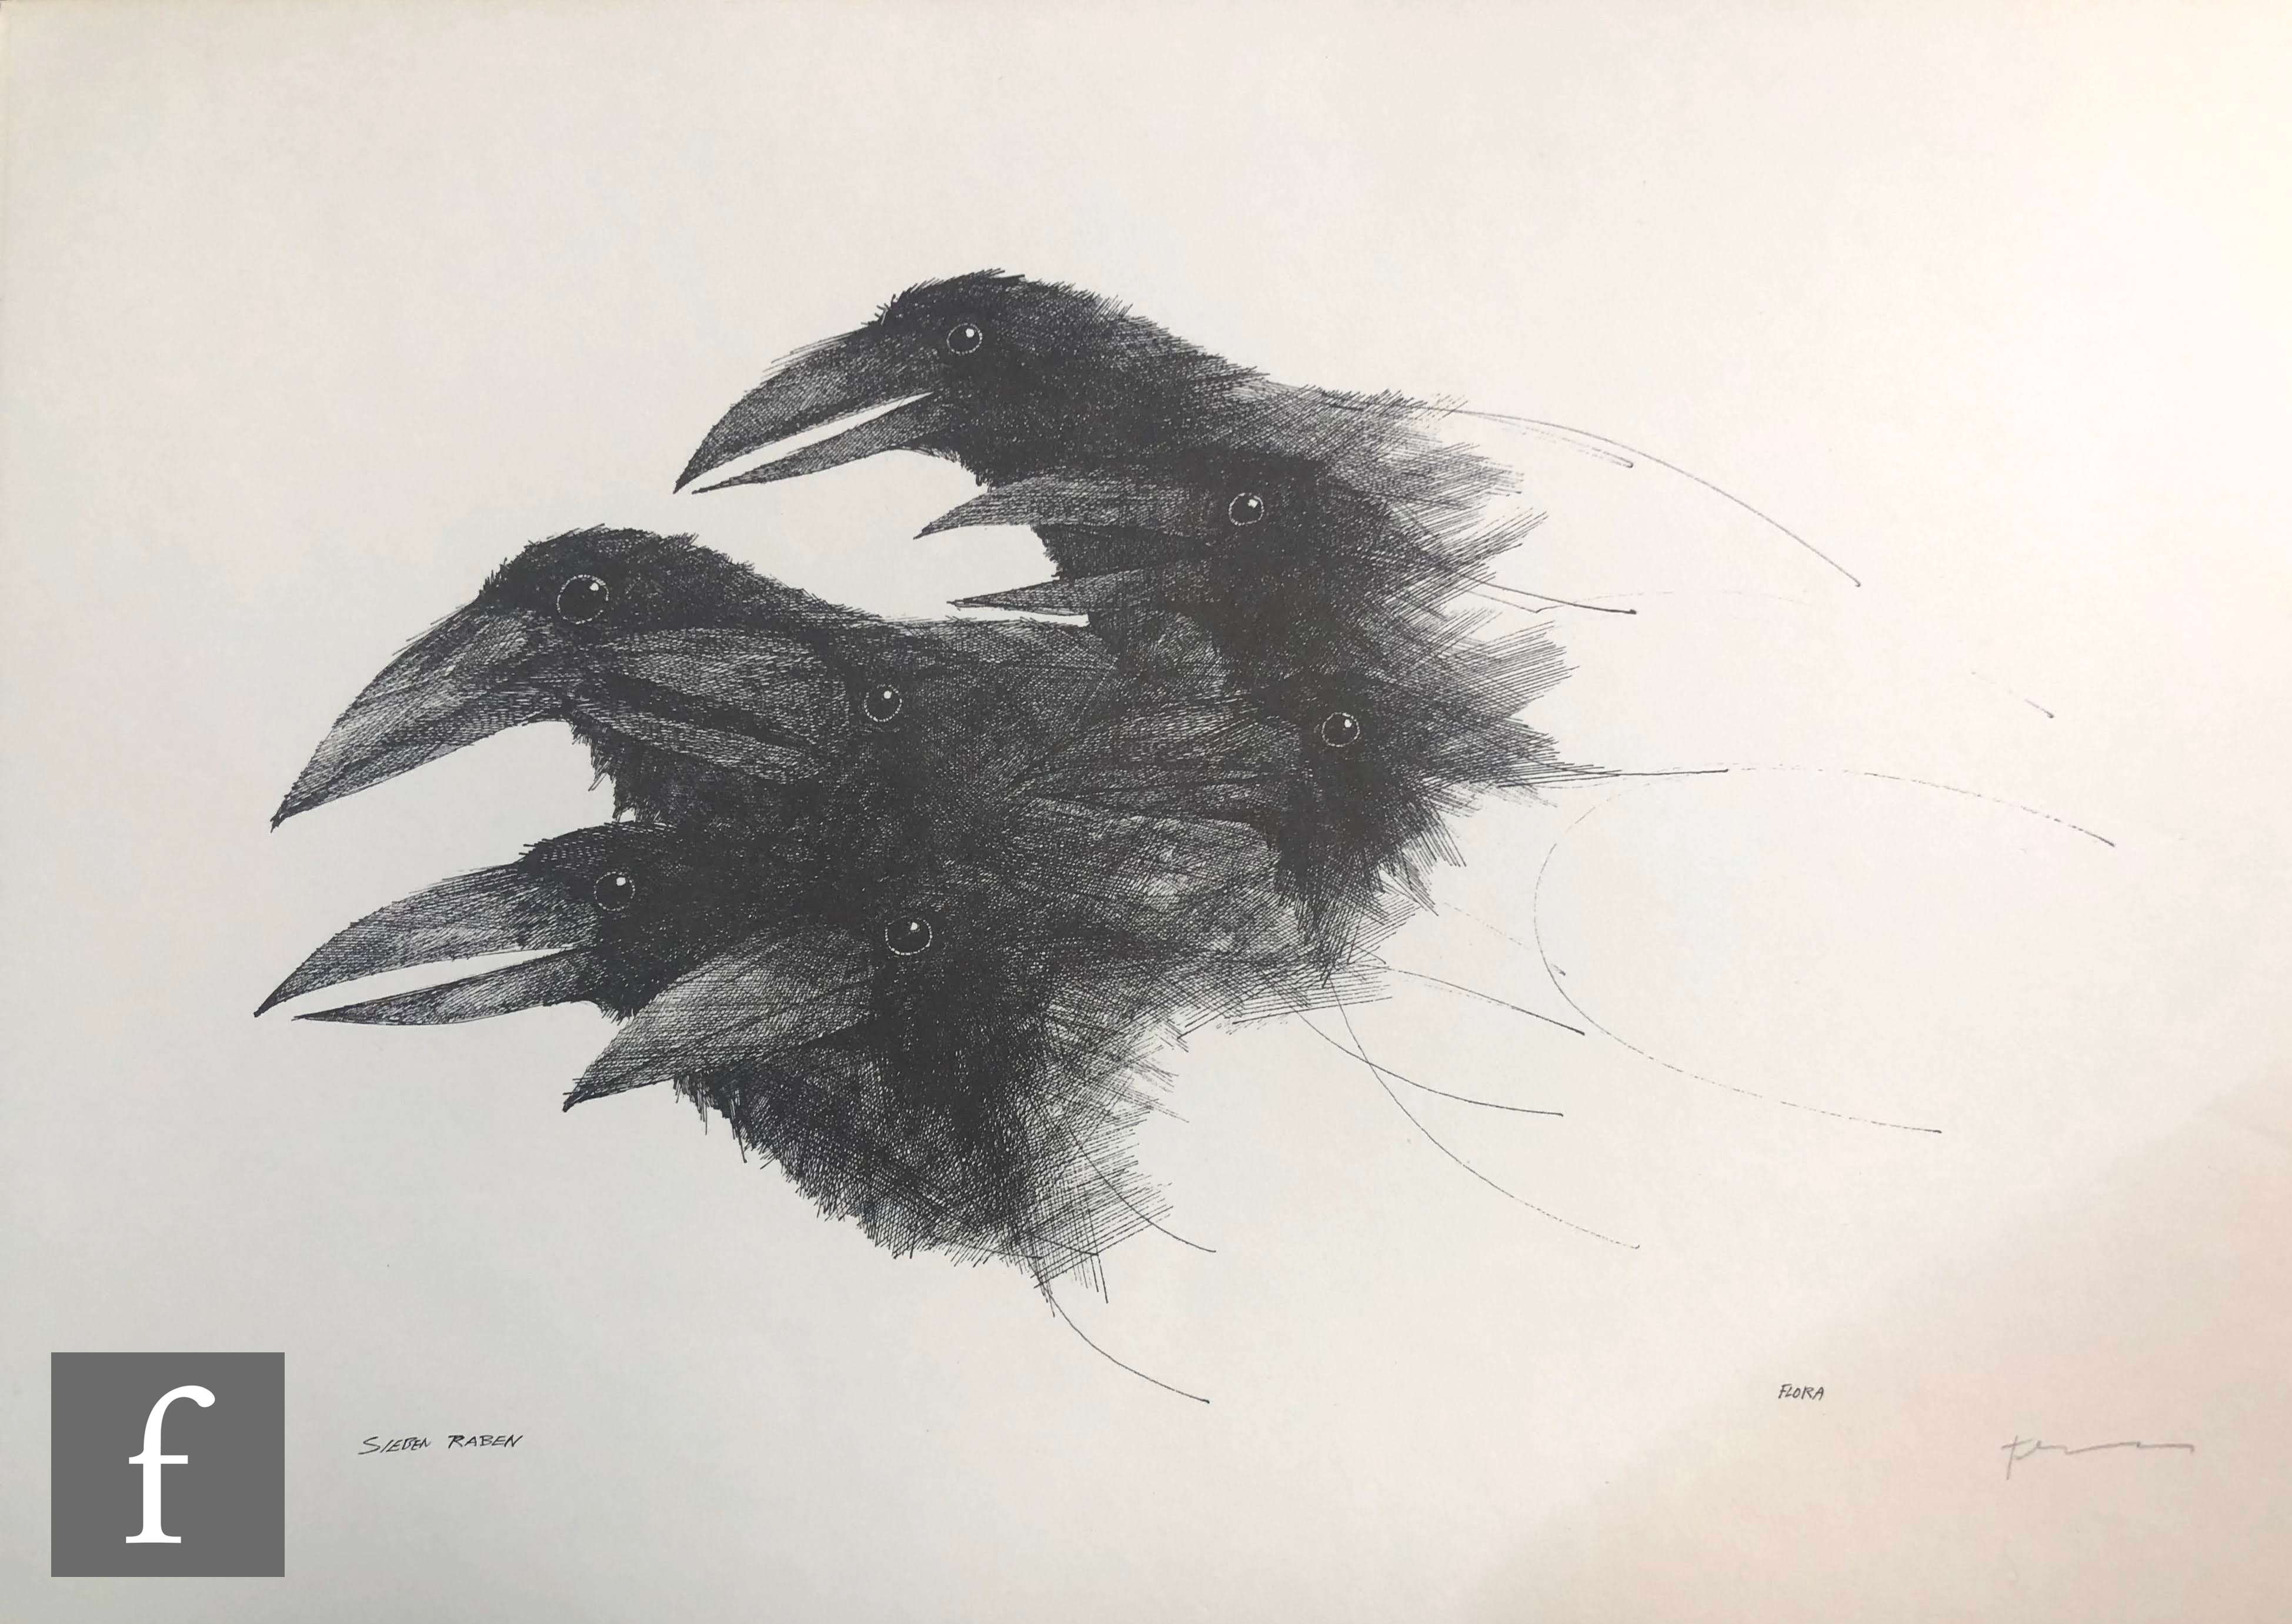 AFTER PAUL FLORA - Die Raben (The Ravens), a set of lithographs in original folder signed and - Image 4 of 4